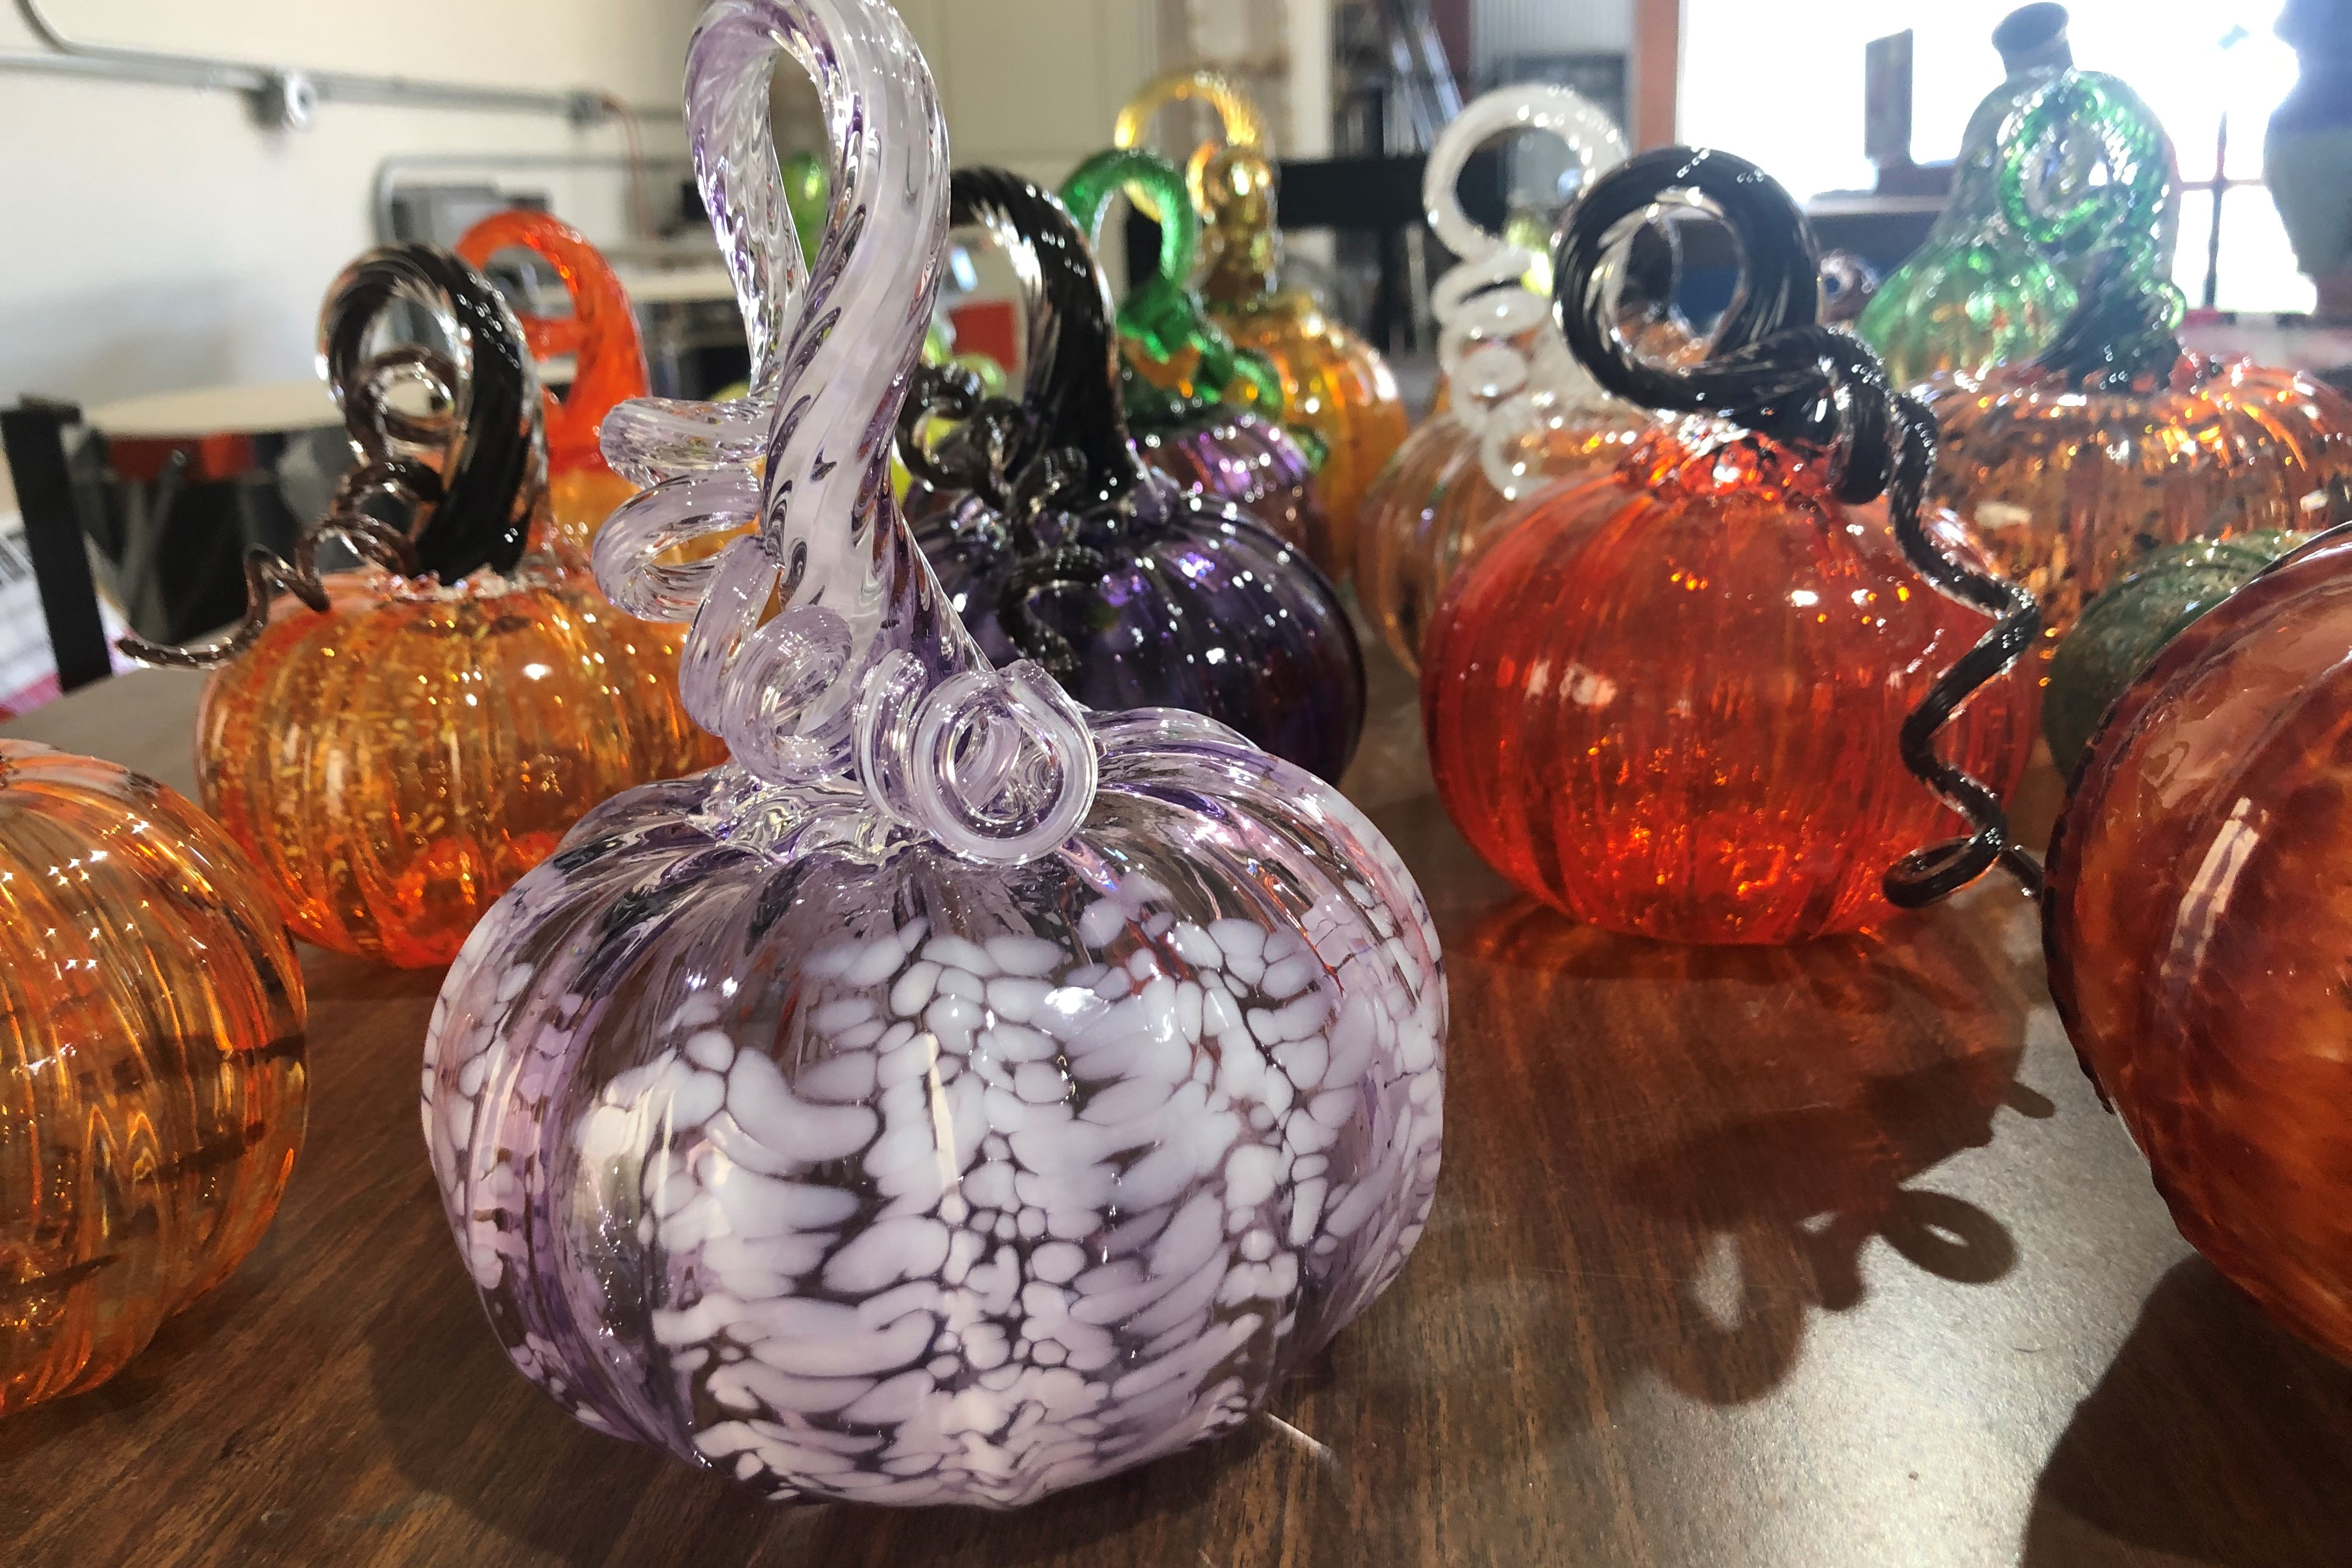 Glass pumpkins to be displayed in the Great Glass Pumpkin Patch of 2019.